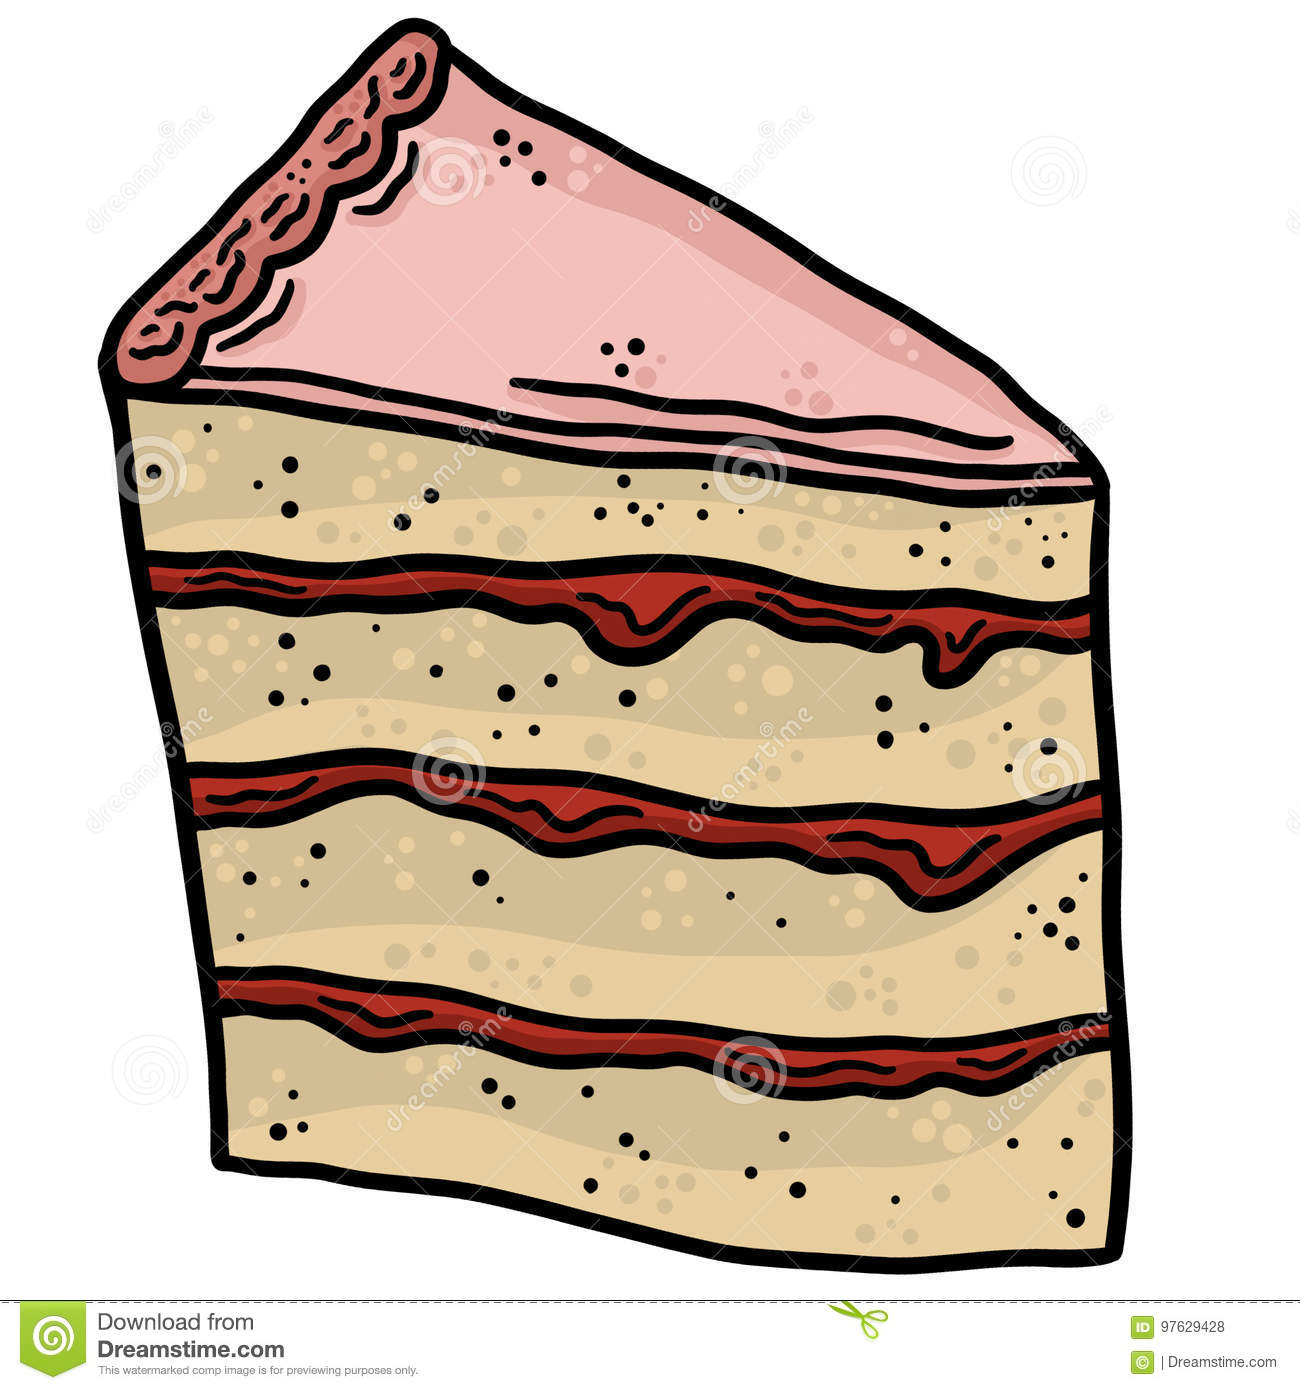 hight resolution of slice of cake line art vector illustration clip art